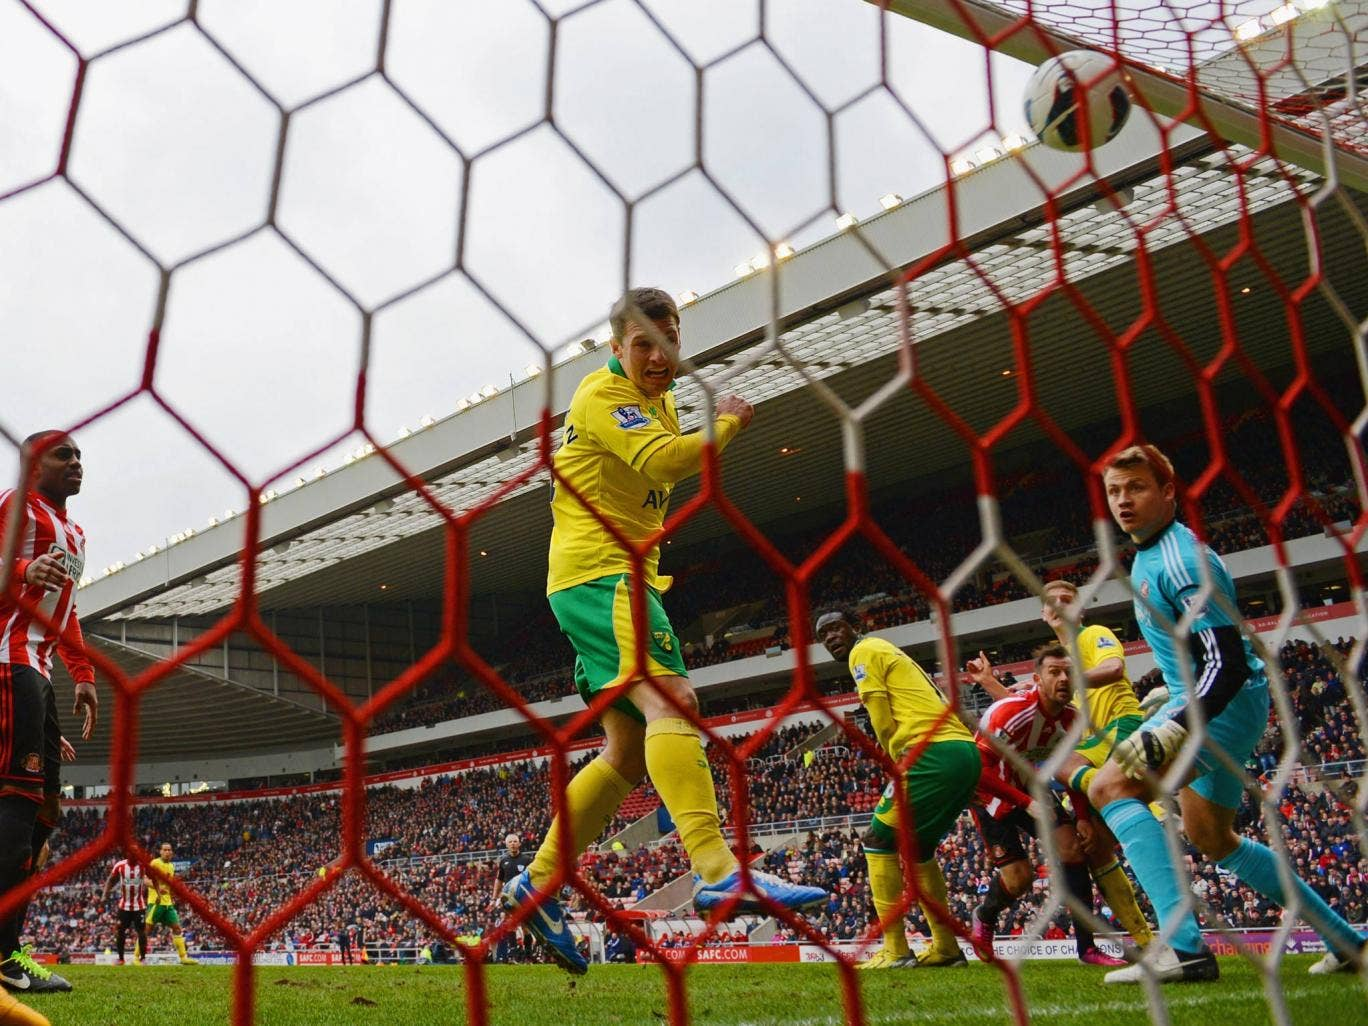 Wesley Hoolahan of Norwich scores to make it 1-0 against Sunderland. The match ended 1-1